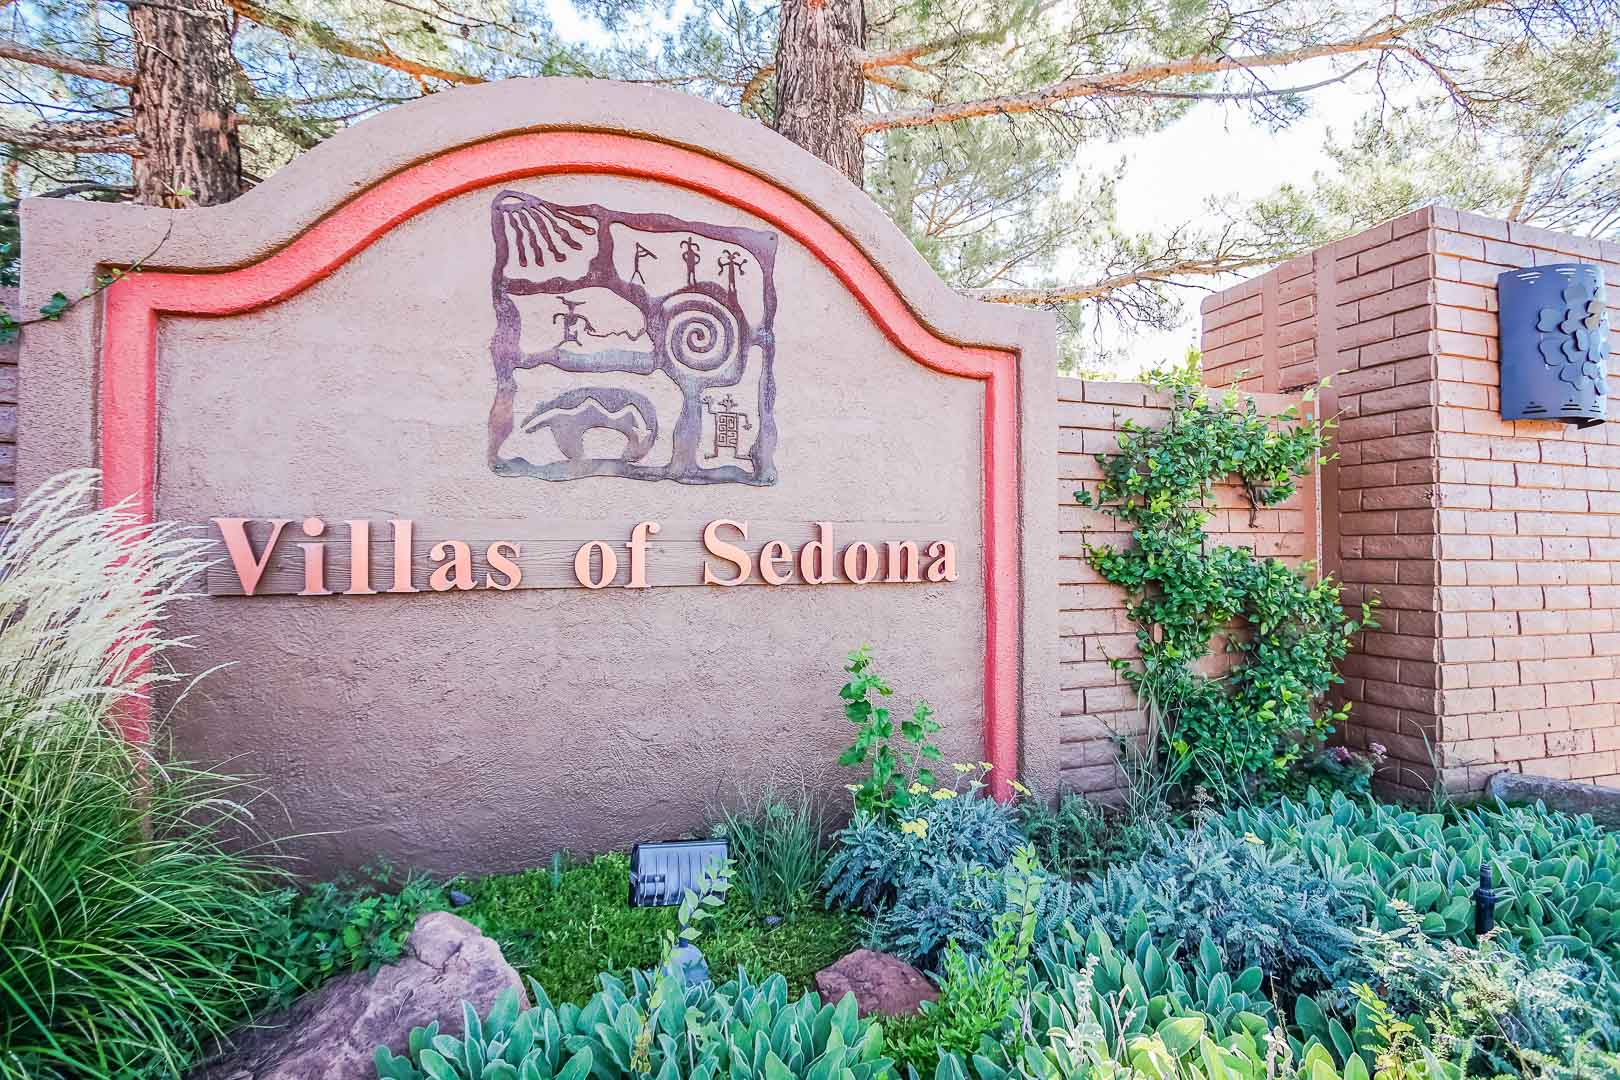 Villas-of-sedona-01